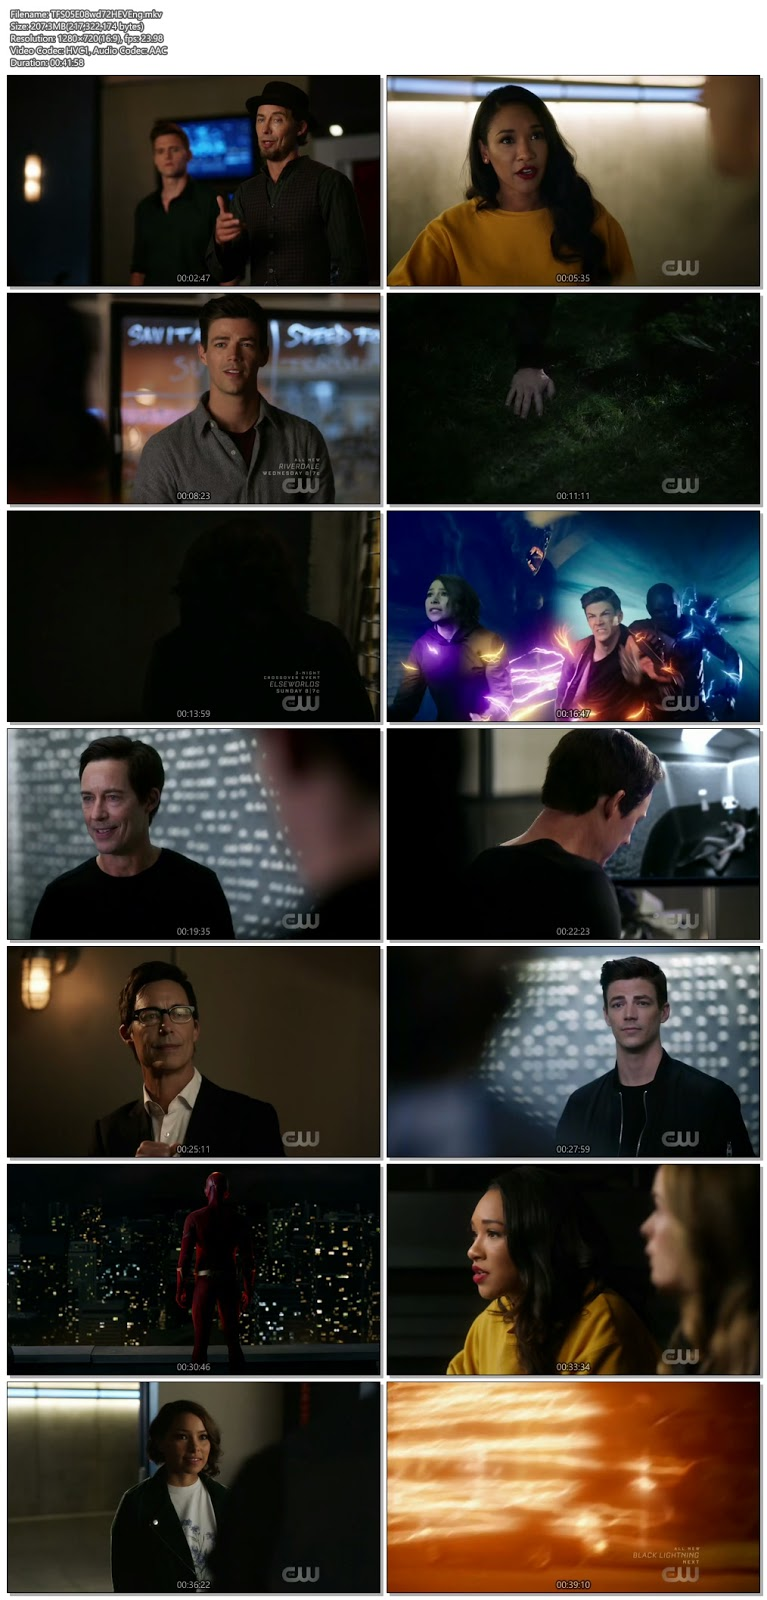 The Flash S05 Episode 08 720p HDTV 200MB ESub x265 HEVC, hollwood tv series The Flash S05 Episode 04 720p hdtv tv show hevc x265 hdrip 200mb 250mb free download or watch online at world4ufree.vip